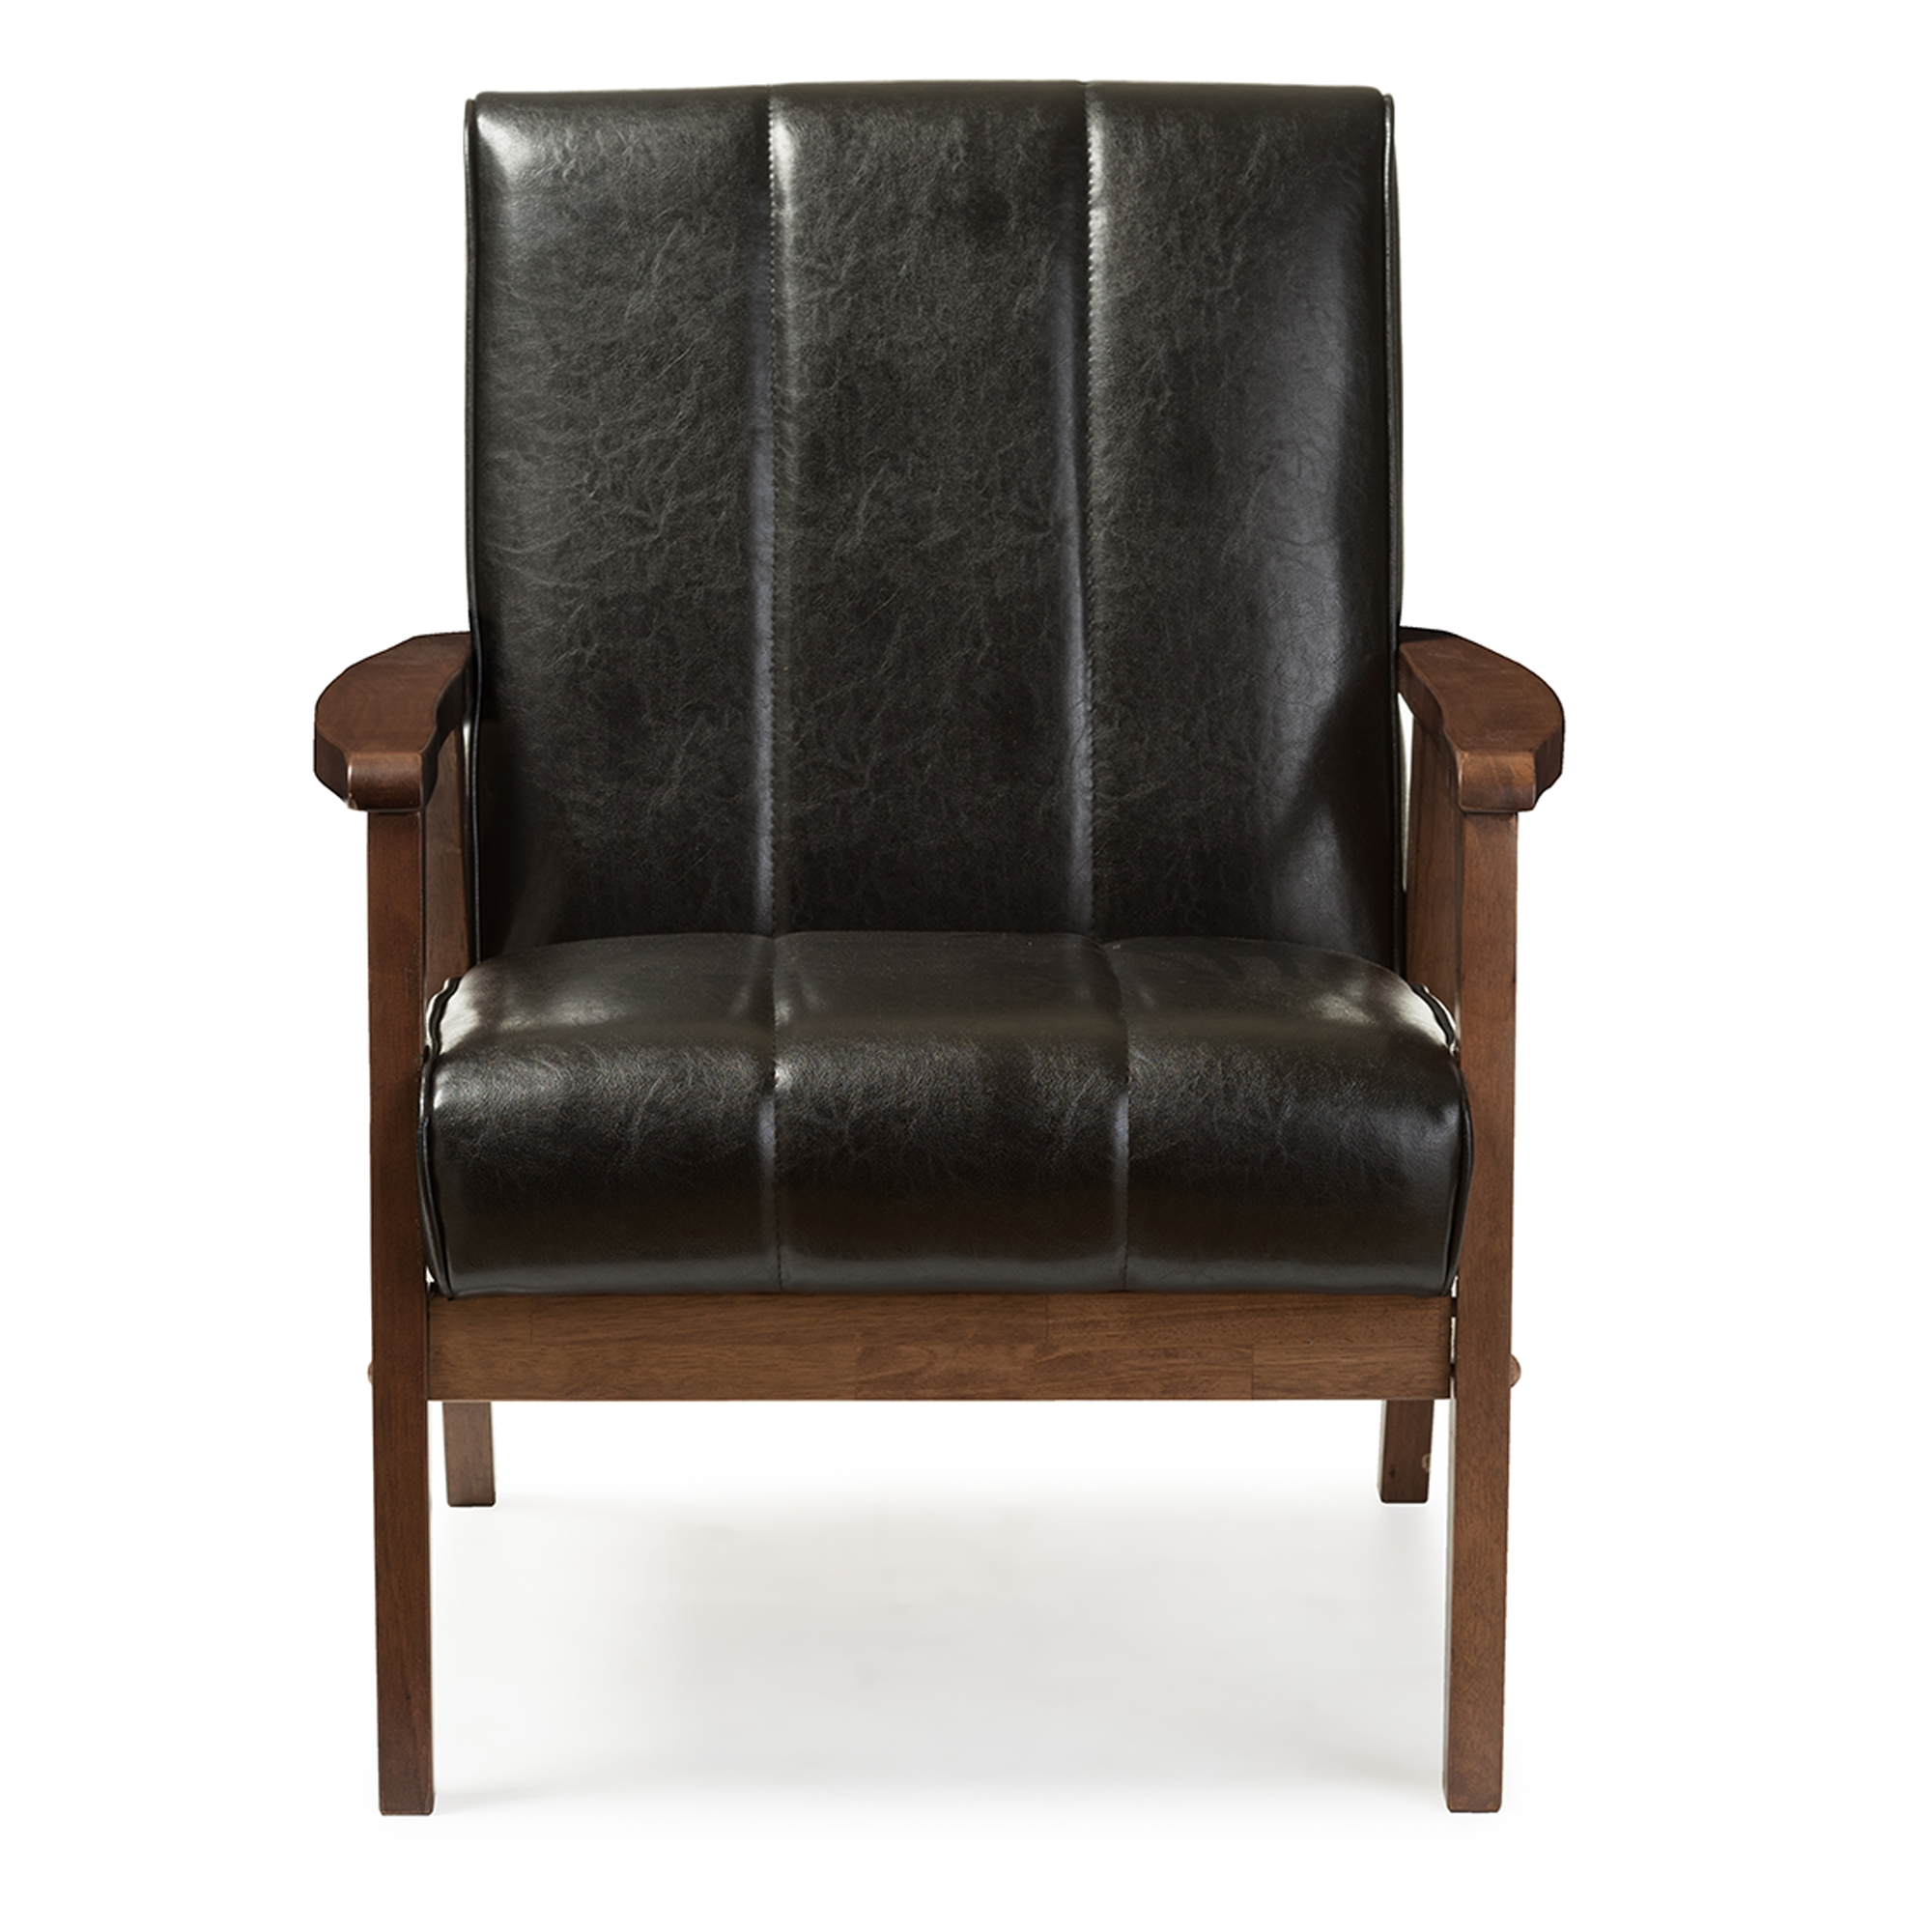 baxton studio modern leather accent chair design steel nikko mid century scandinavian style